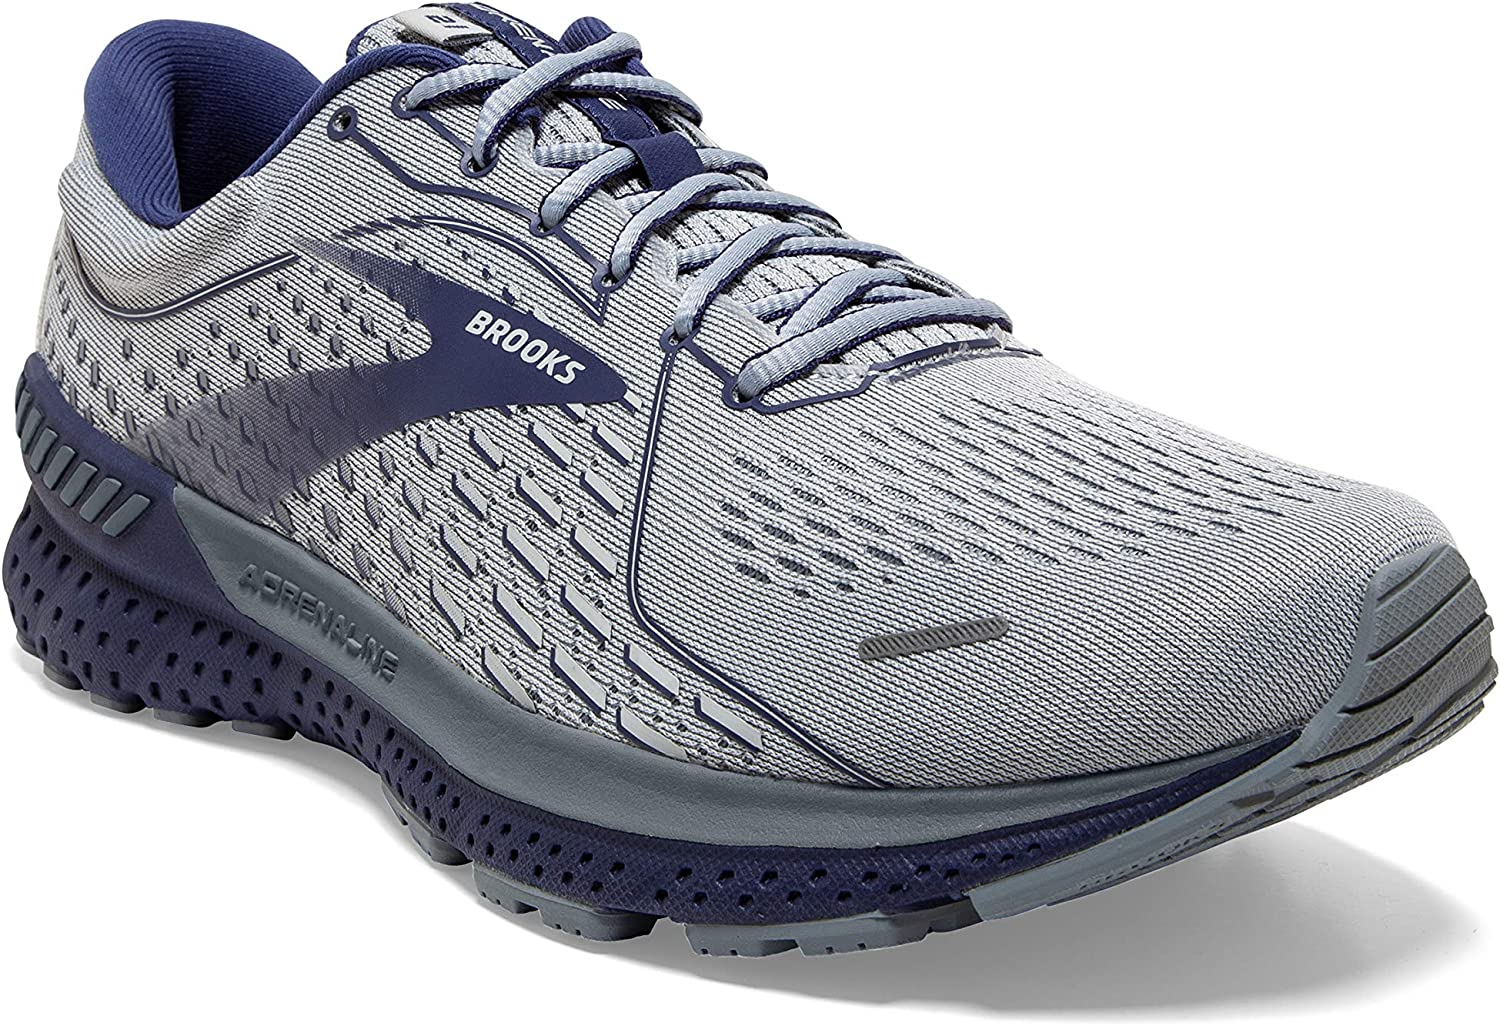 Women's Brooks Adrenaline GTS 17 Running Shoes